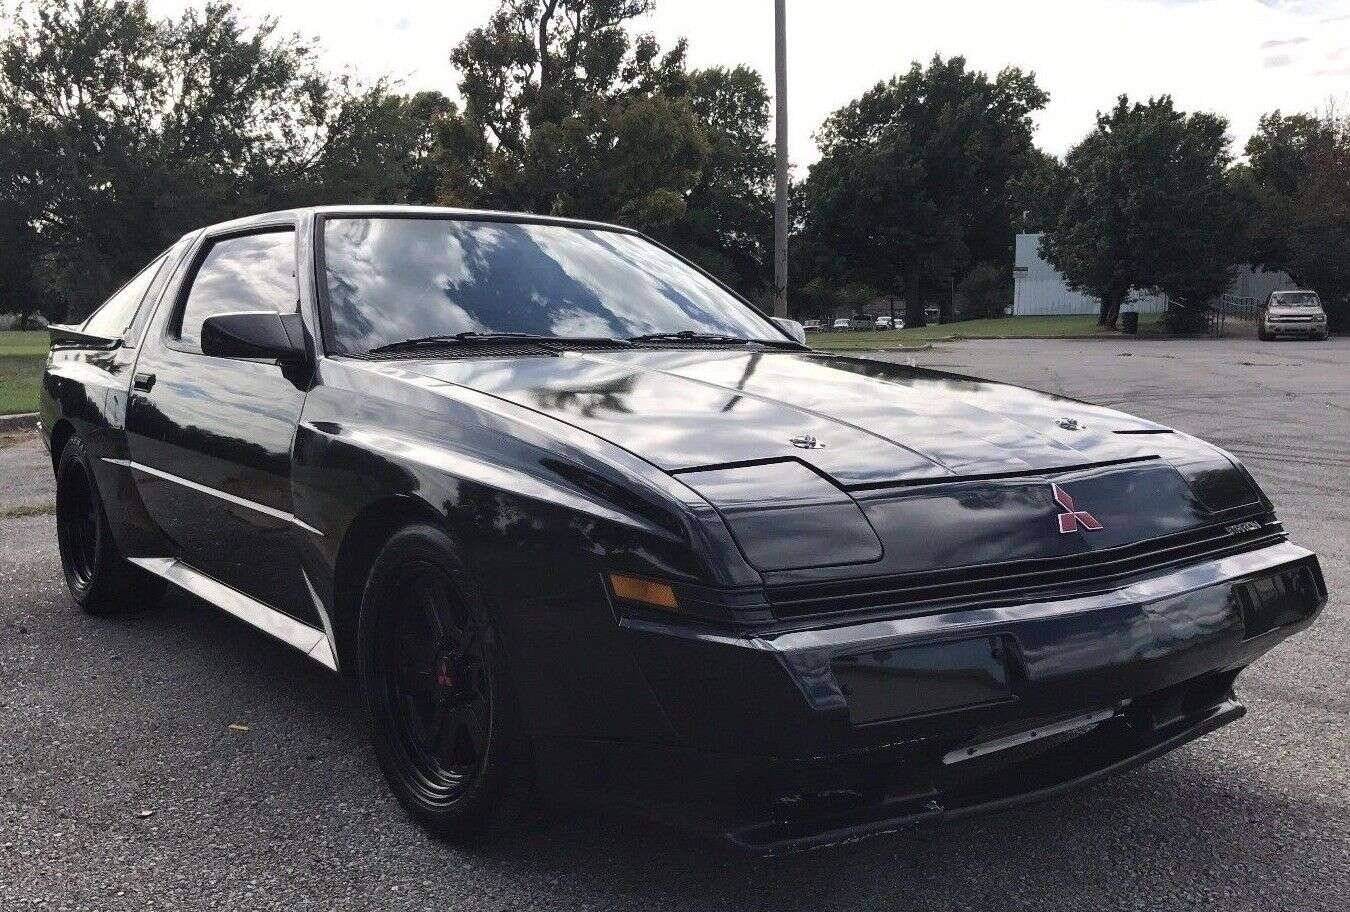 mitsubishi starion engine swap with Ebay Find Ls Swapped Mitsubishi Starion on Dodge 5 2 Wiring Harness moreover Opel Colorado also Fmic as well Mad Mike additionally Toyota 4runner Wiring Diagram.